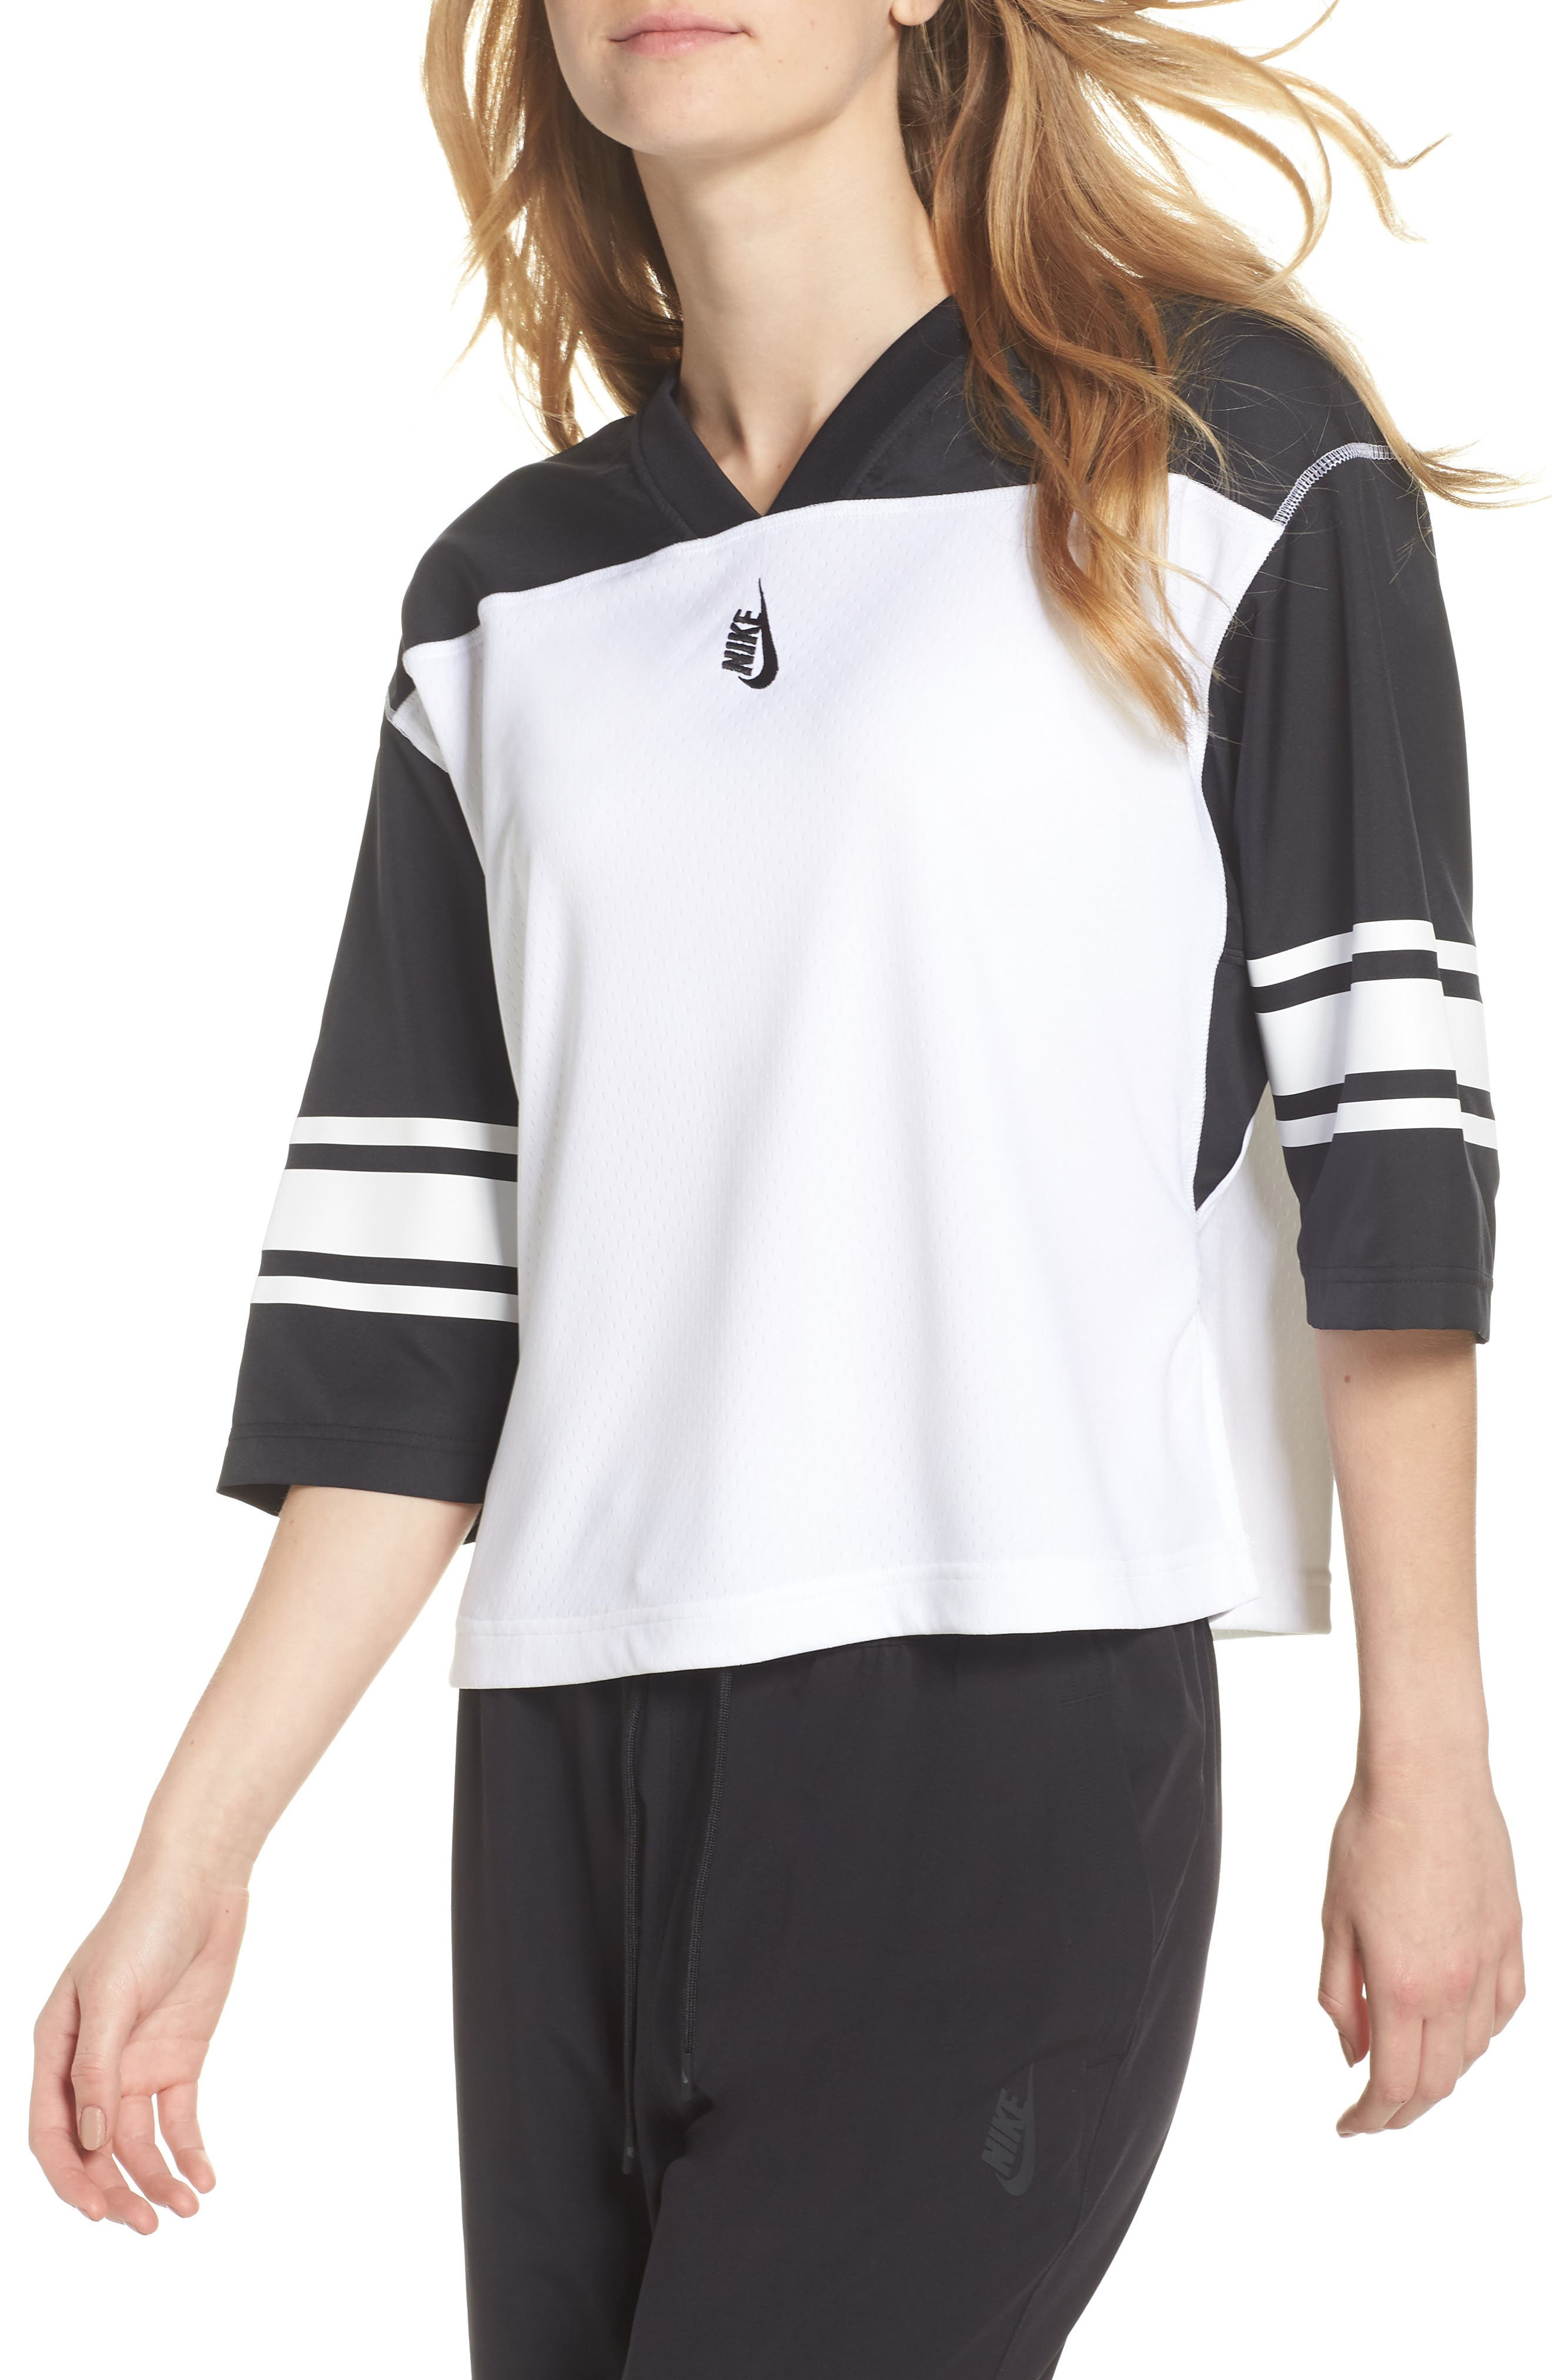 NikeLab Collection Football Top,                         Main,                         color, BLACK/ WHITE/ BLACK